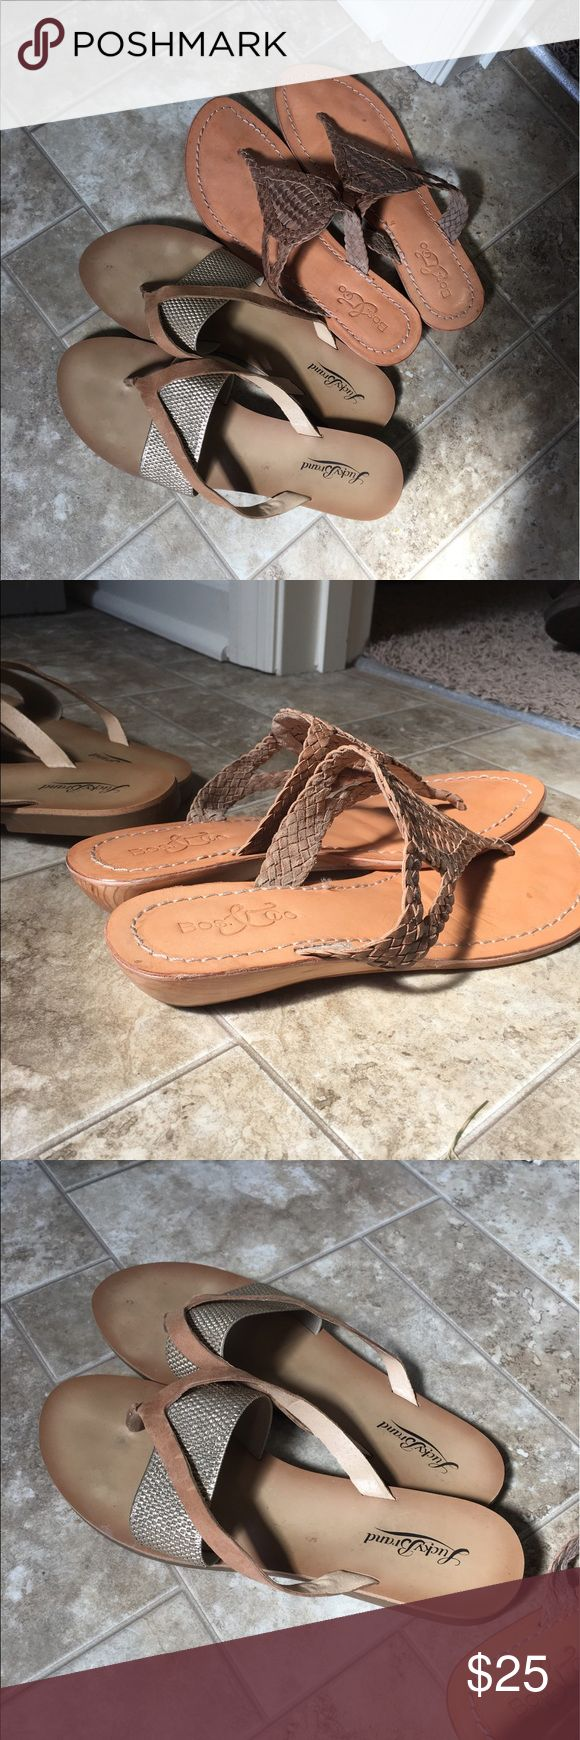 2 pairs of neutral sandals Flip flops with elastic gold band is lucky brand. The other is a boutique brand. Both size 9 and lightly worn. True to size. Price is for both. Lucky Brand Shoes Sandals